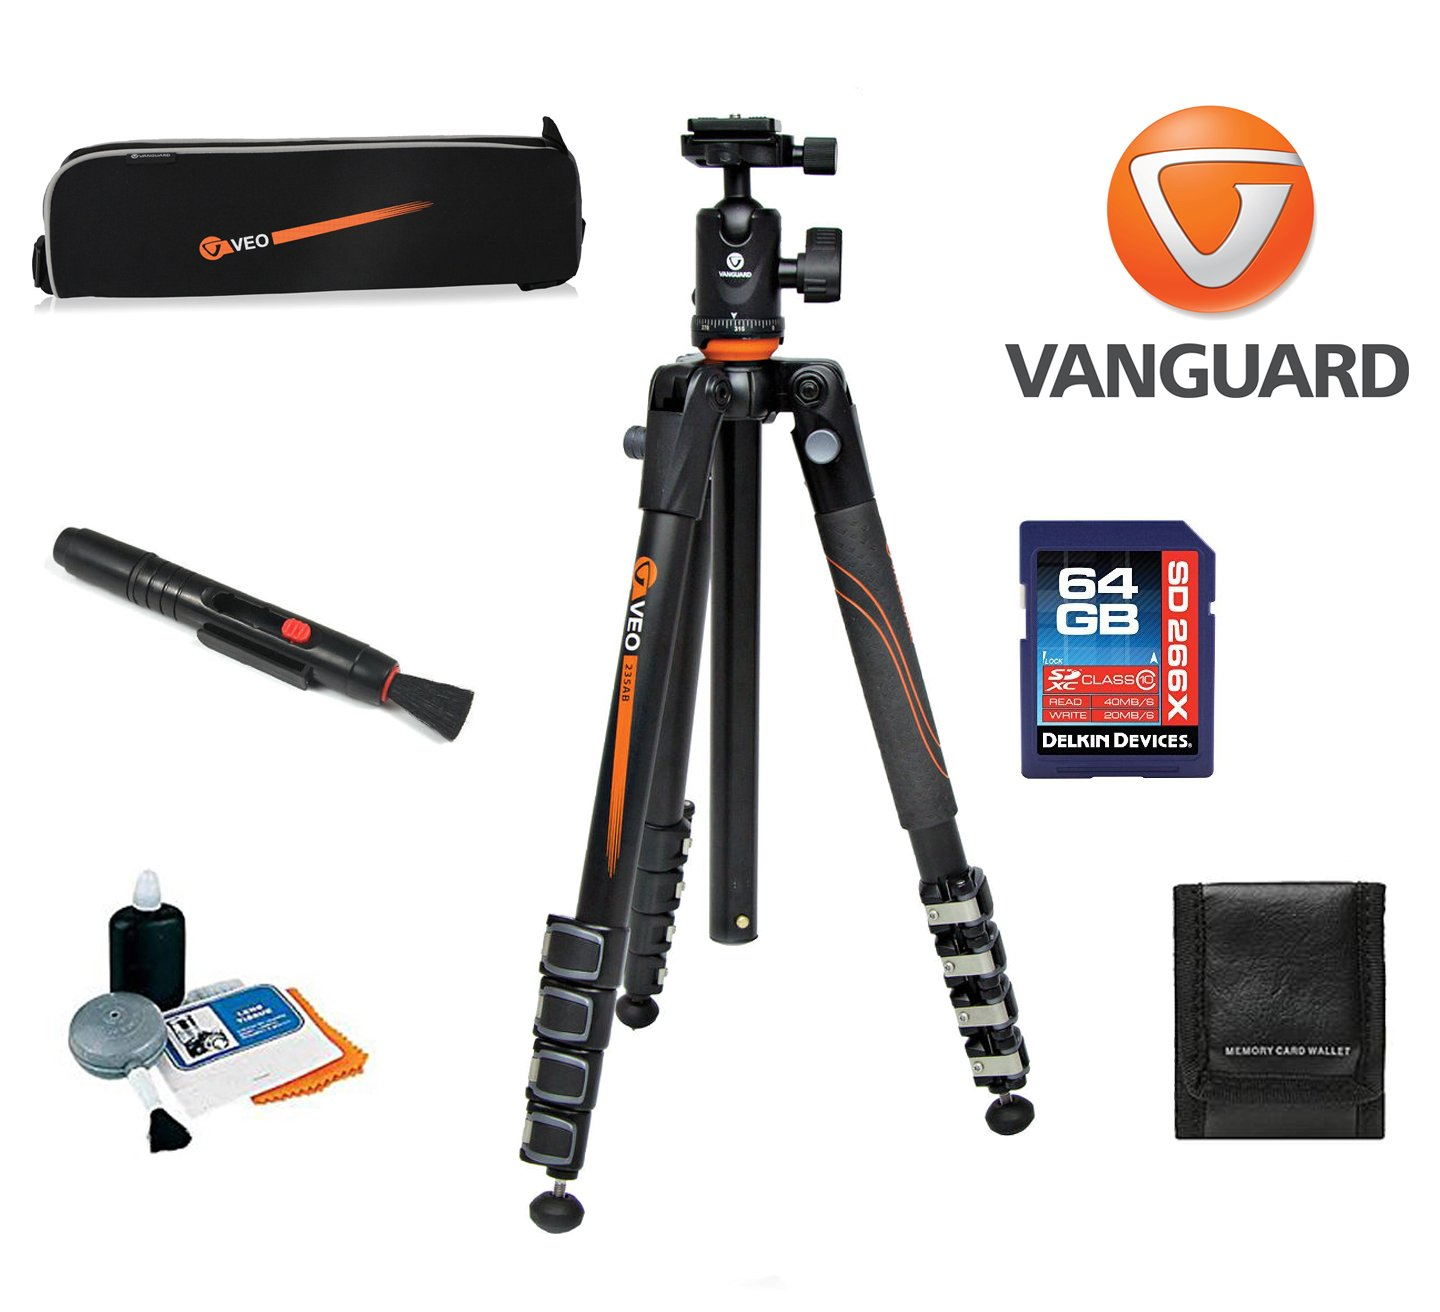 Vanguard VEO 235AB Aluminum Tripod with Ball Head W/ Vanguard Case, 64GB SDXC Card, Cleaning Kit, Lens Pen, Memory Card Wallet by Vanguard